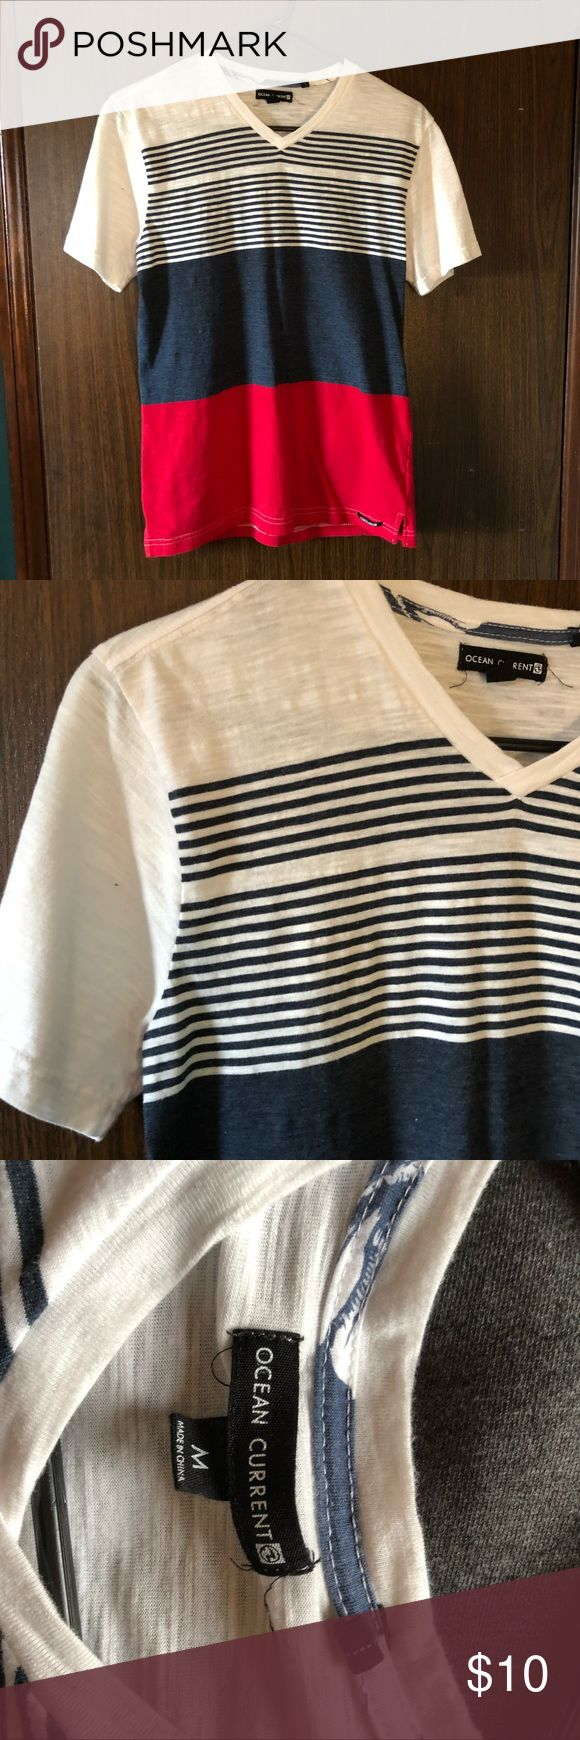 Ocean Current Striped V-Neck Tee •very soft •worn once •no rips, stains, or tears Ocean Current Shirts Tees - Short Sleeve